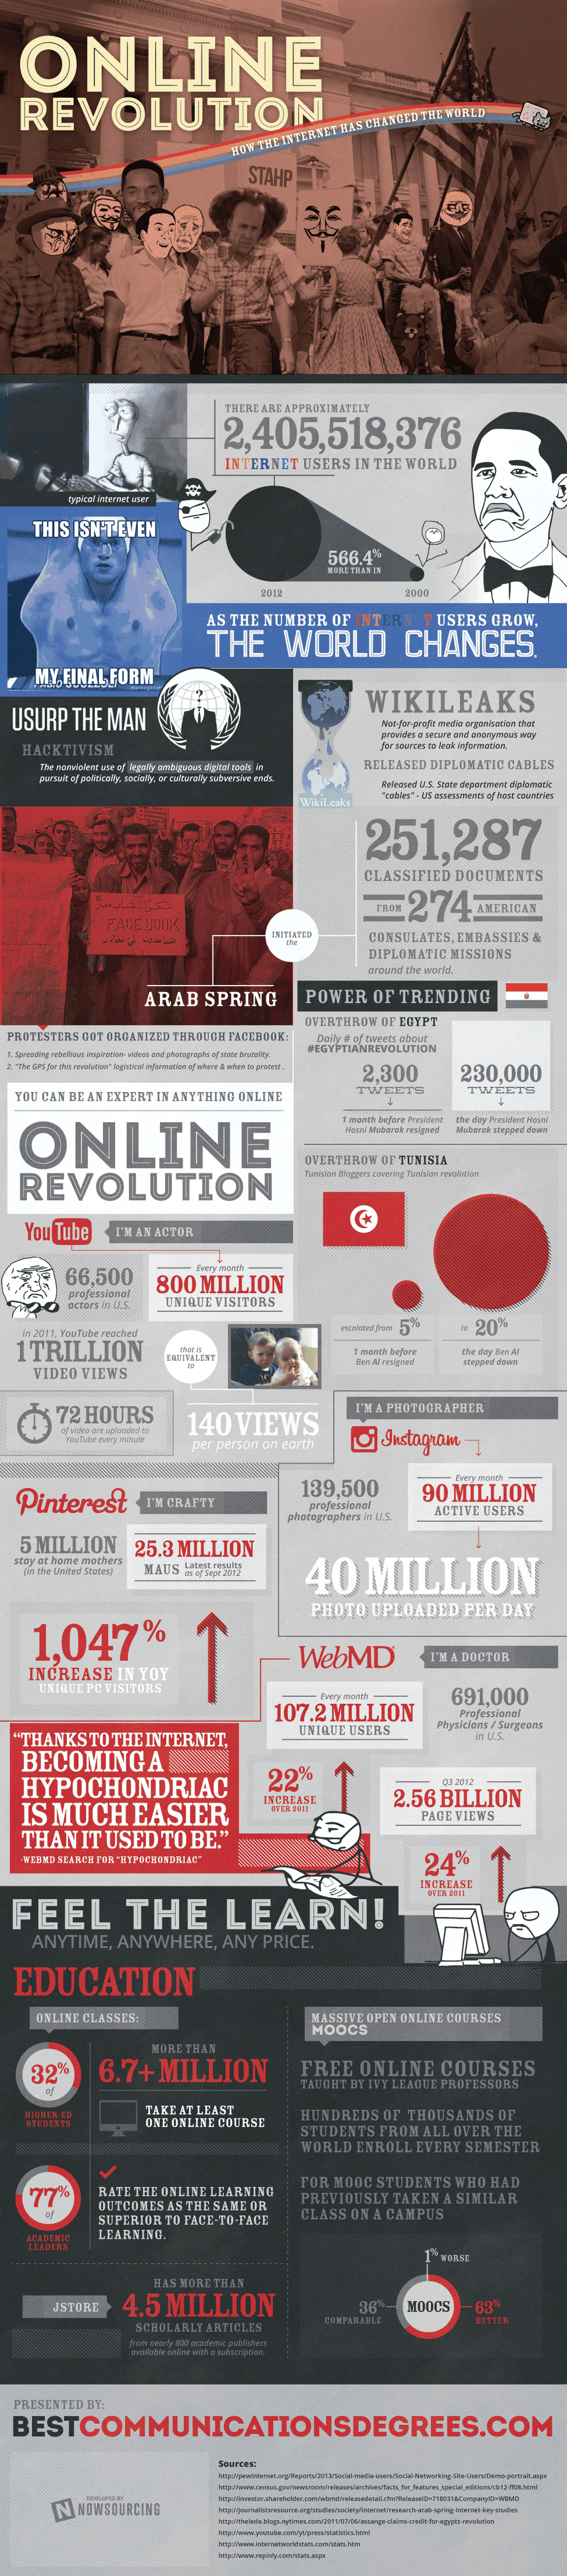 Infographic: Online Revolution: How the Internet Has Changed the World